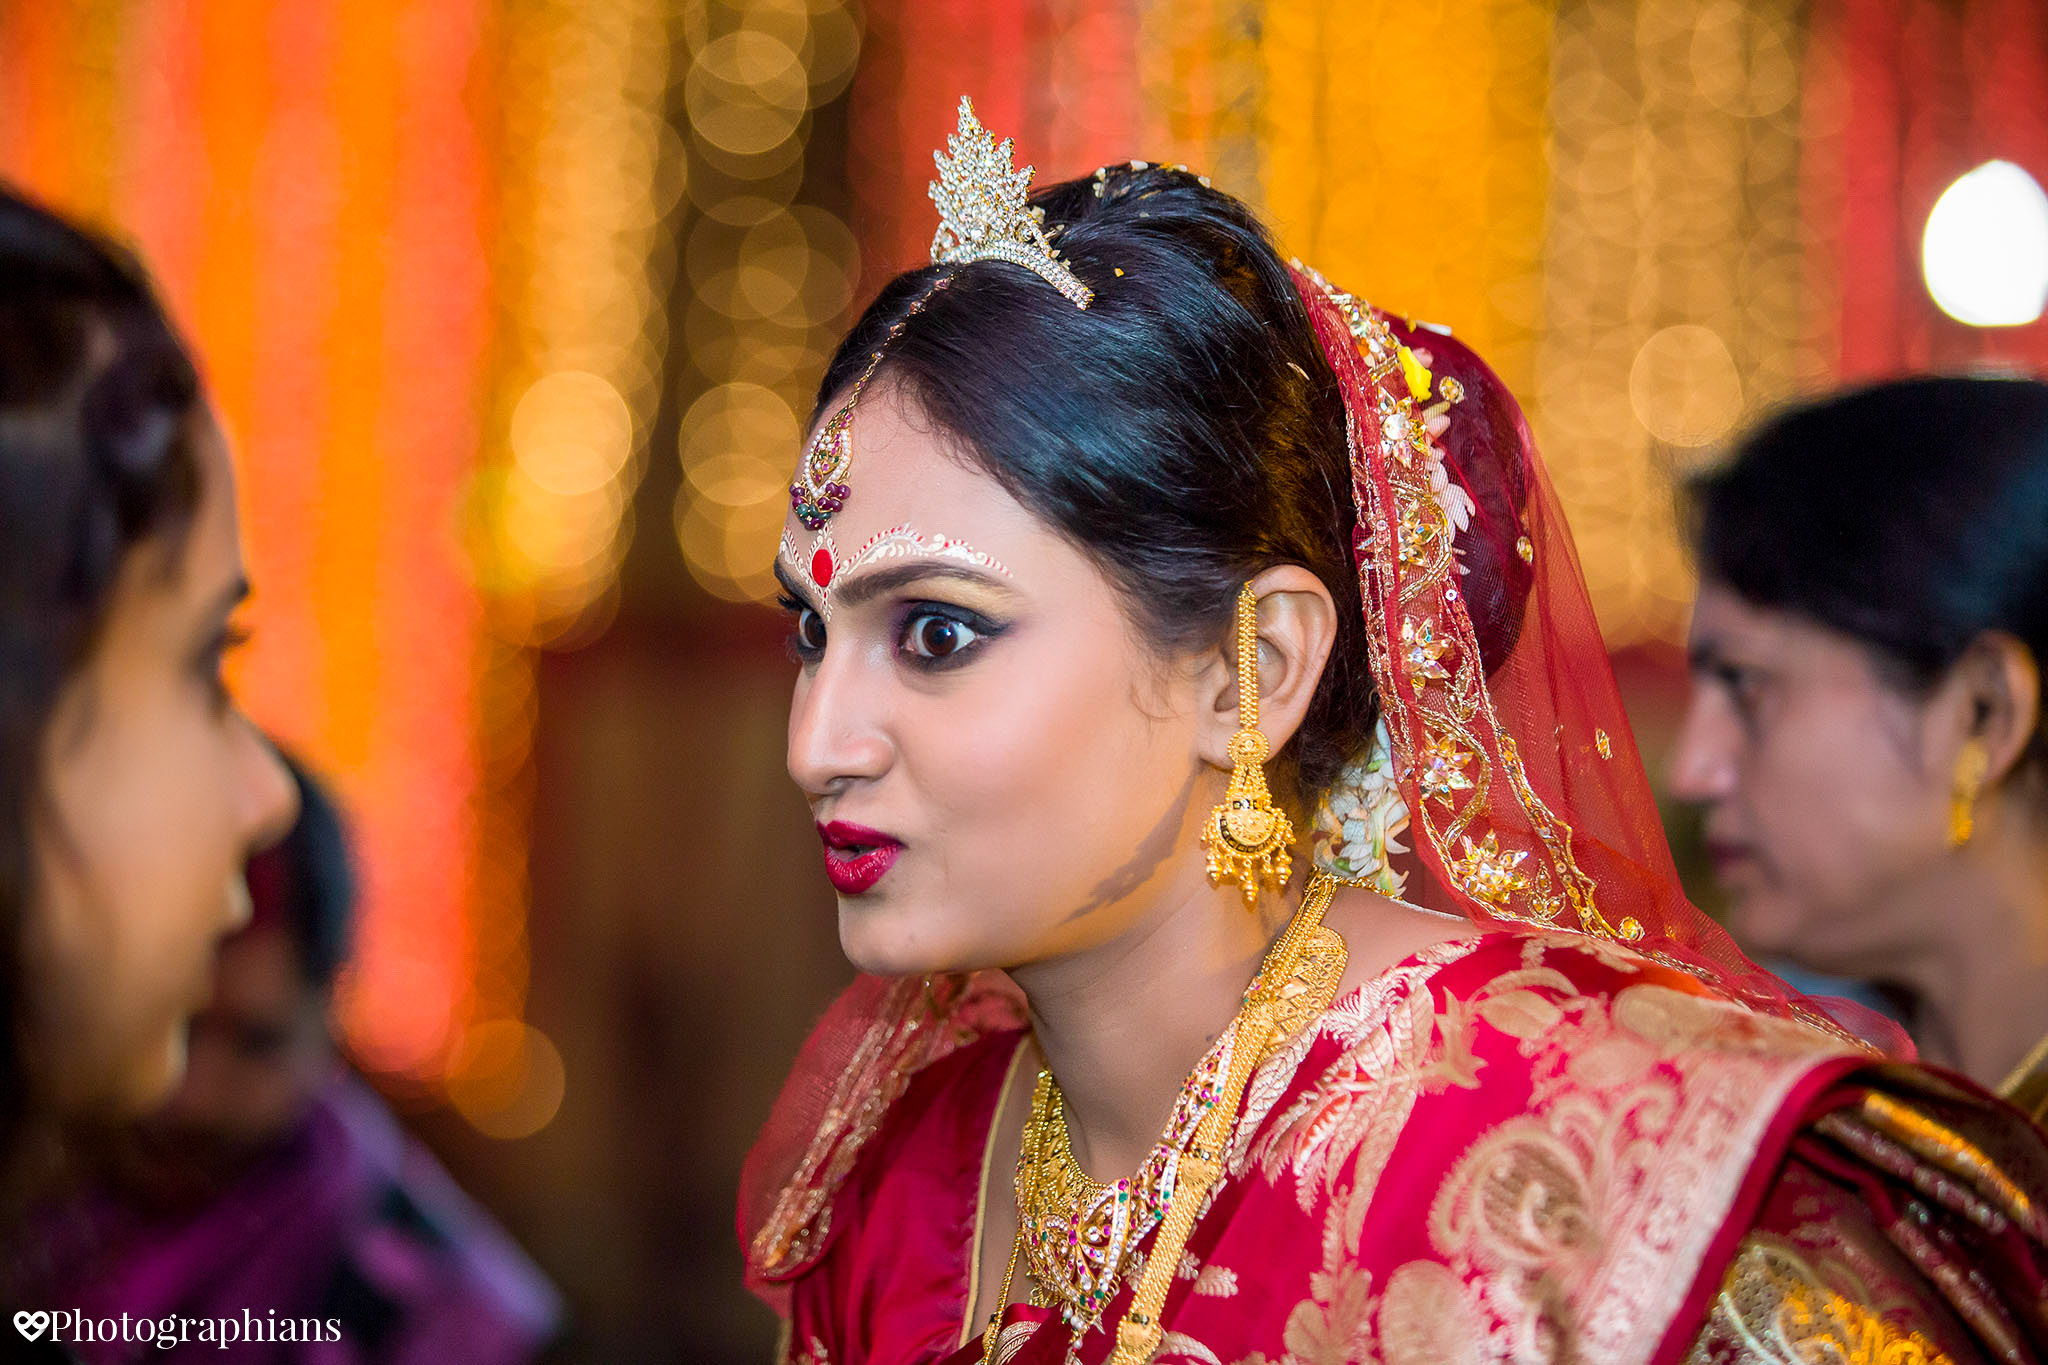 Photographians_Indian_Wedding_Durgapur_035